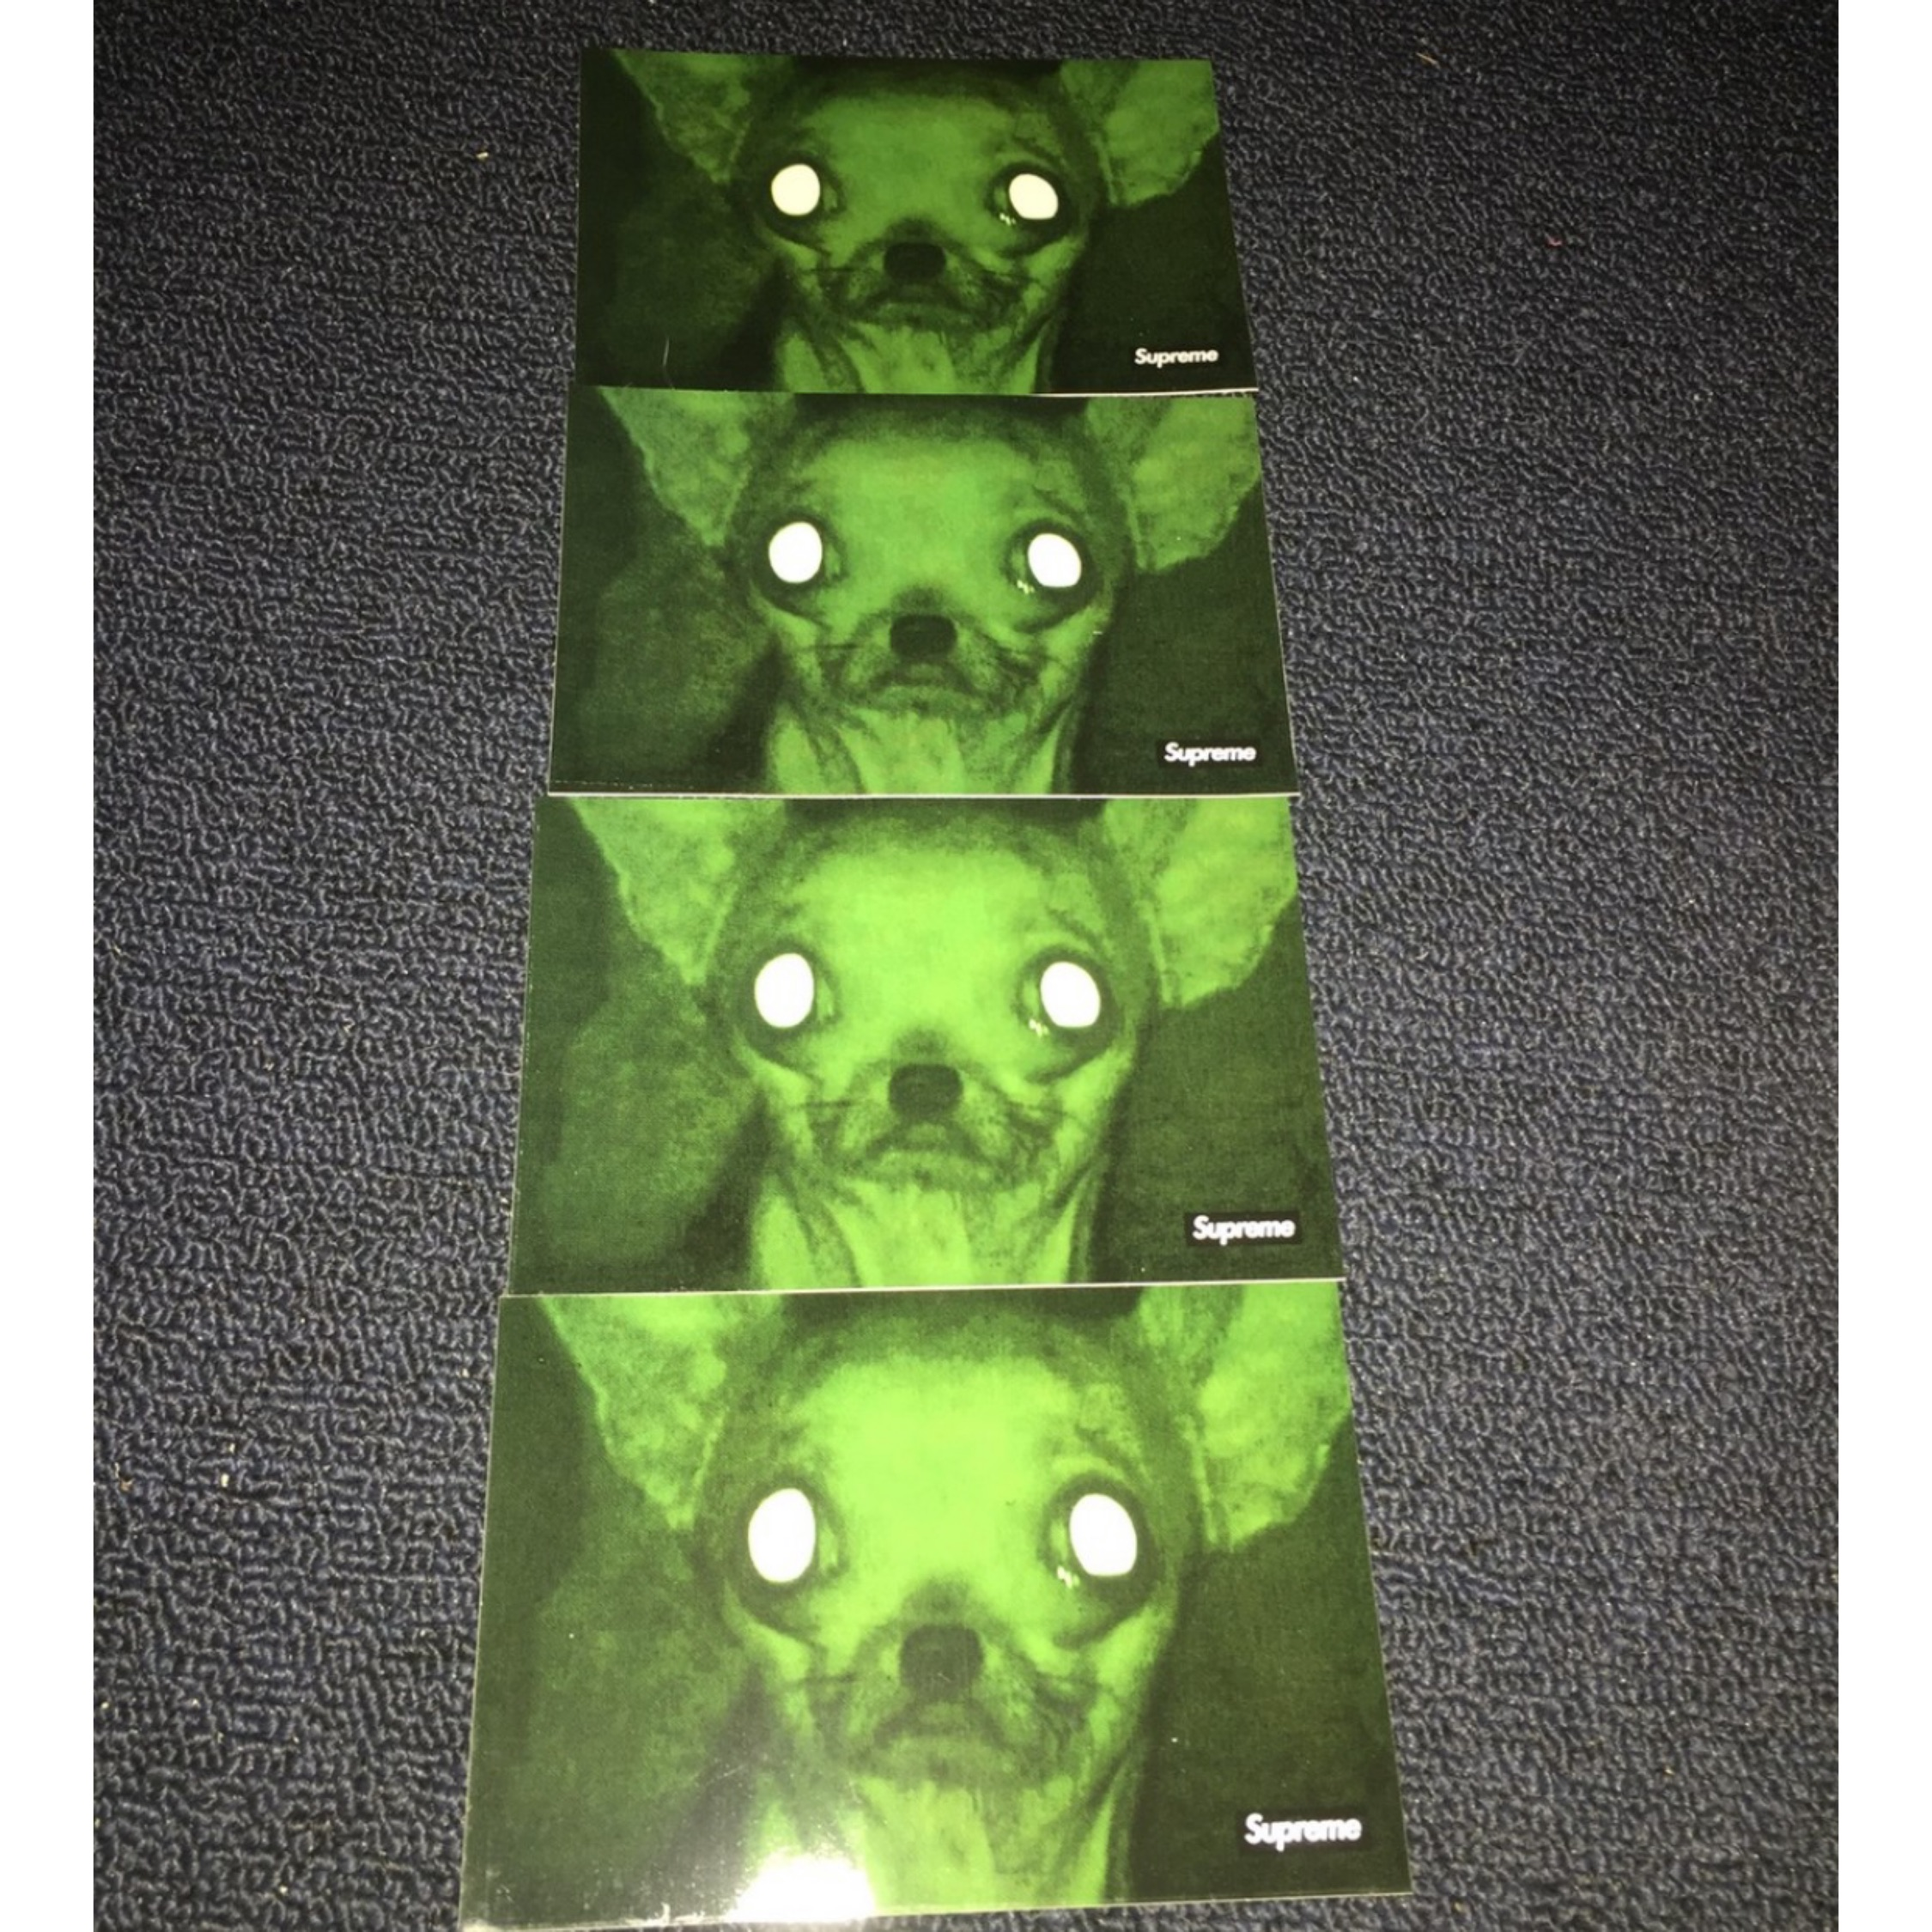 4 Supreme Chris Cunningham Chihuahua Stickers